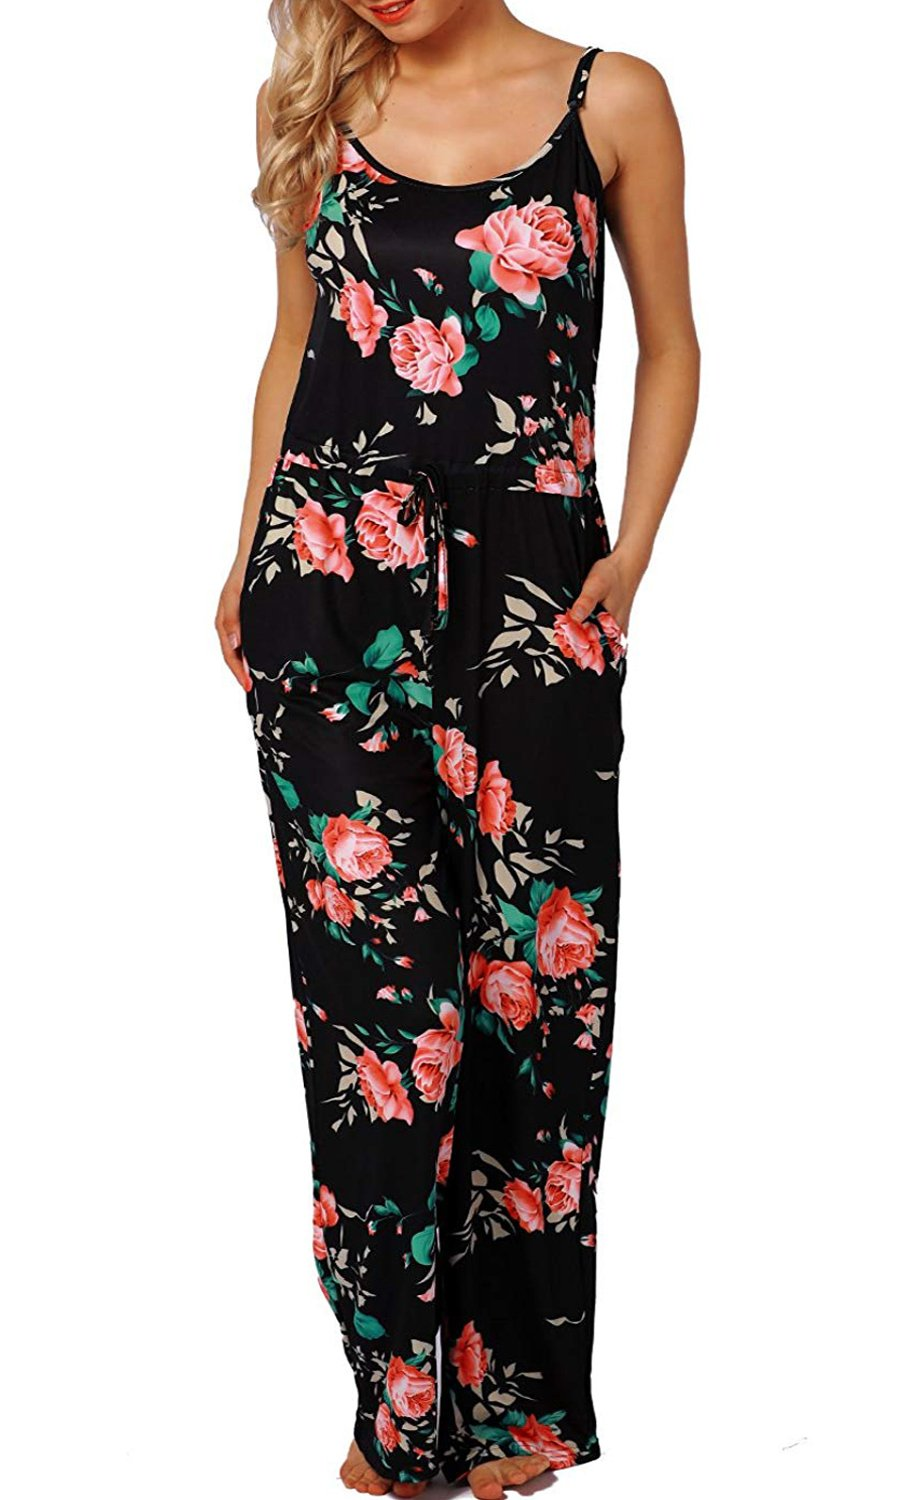 AMiERY Women Rompers Flowers Jumpsuits for Womens Pajamas Wide Leg Long Lounge Pants Rose Halter Sleeveless Jumpsuits (M, Black) by AMiERY